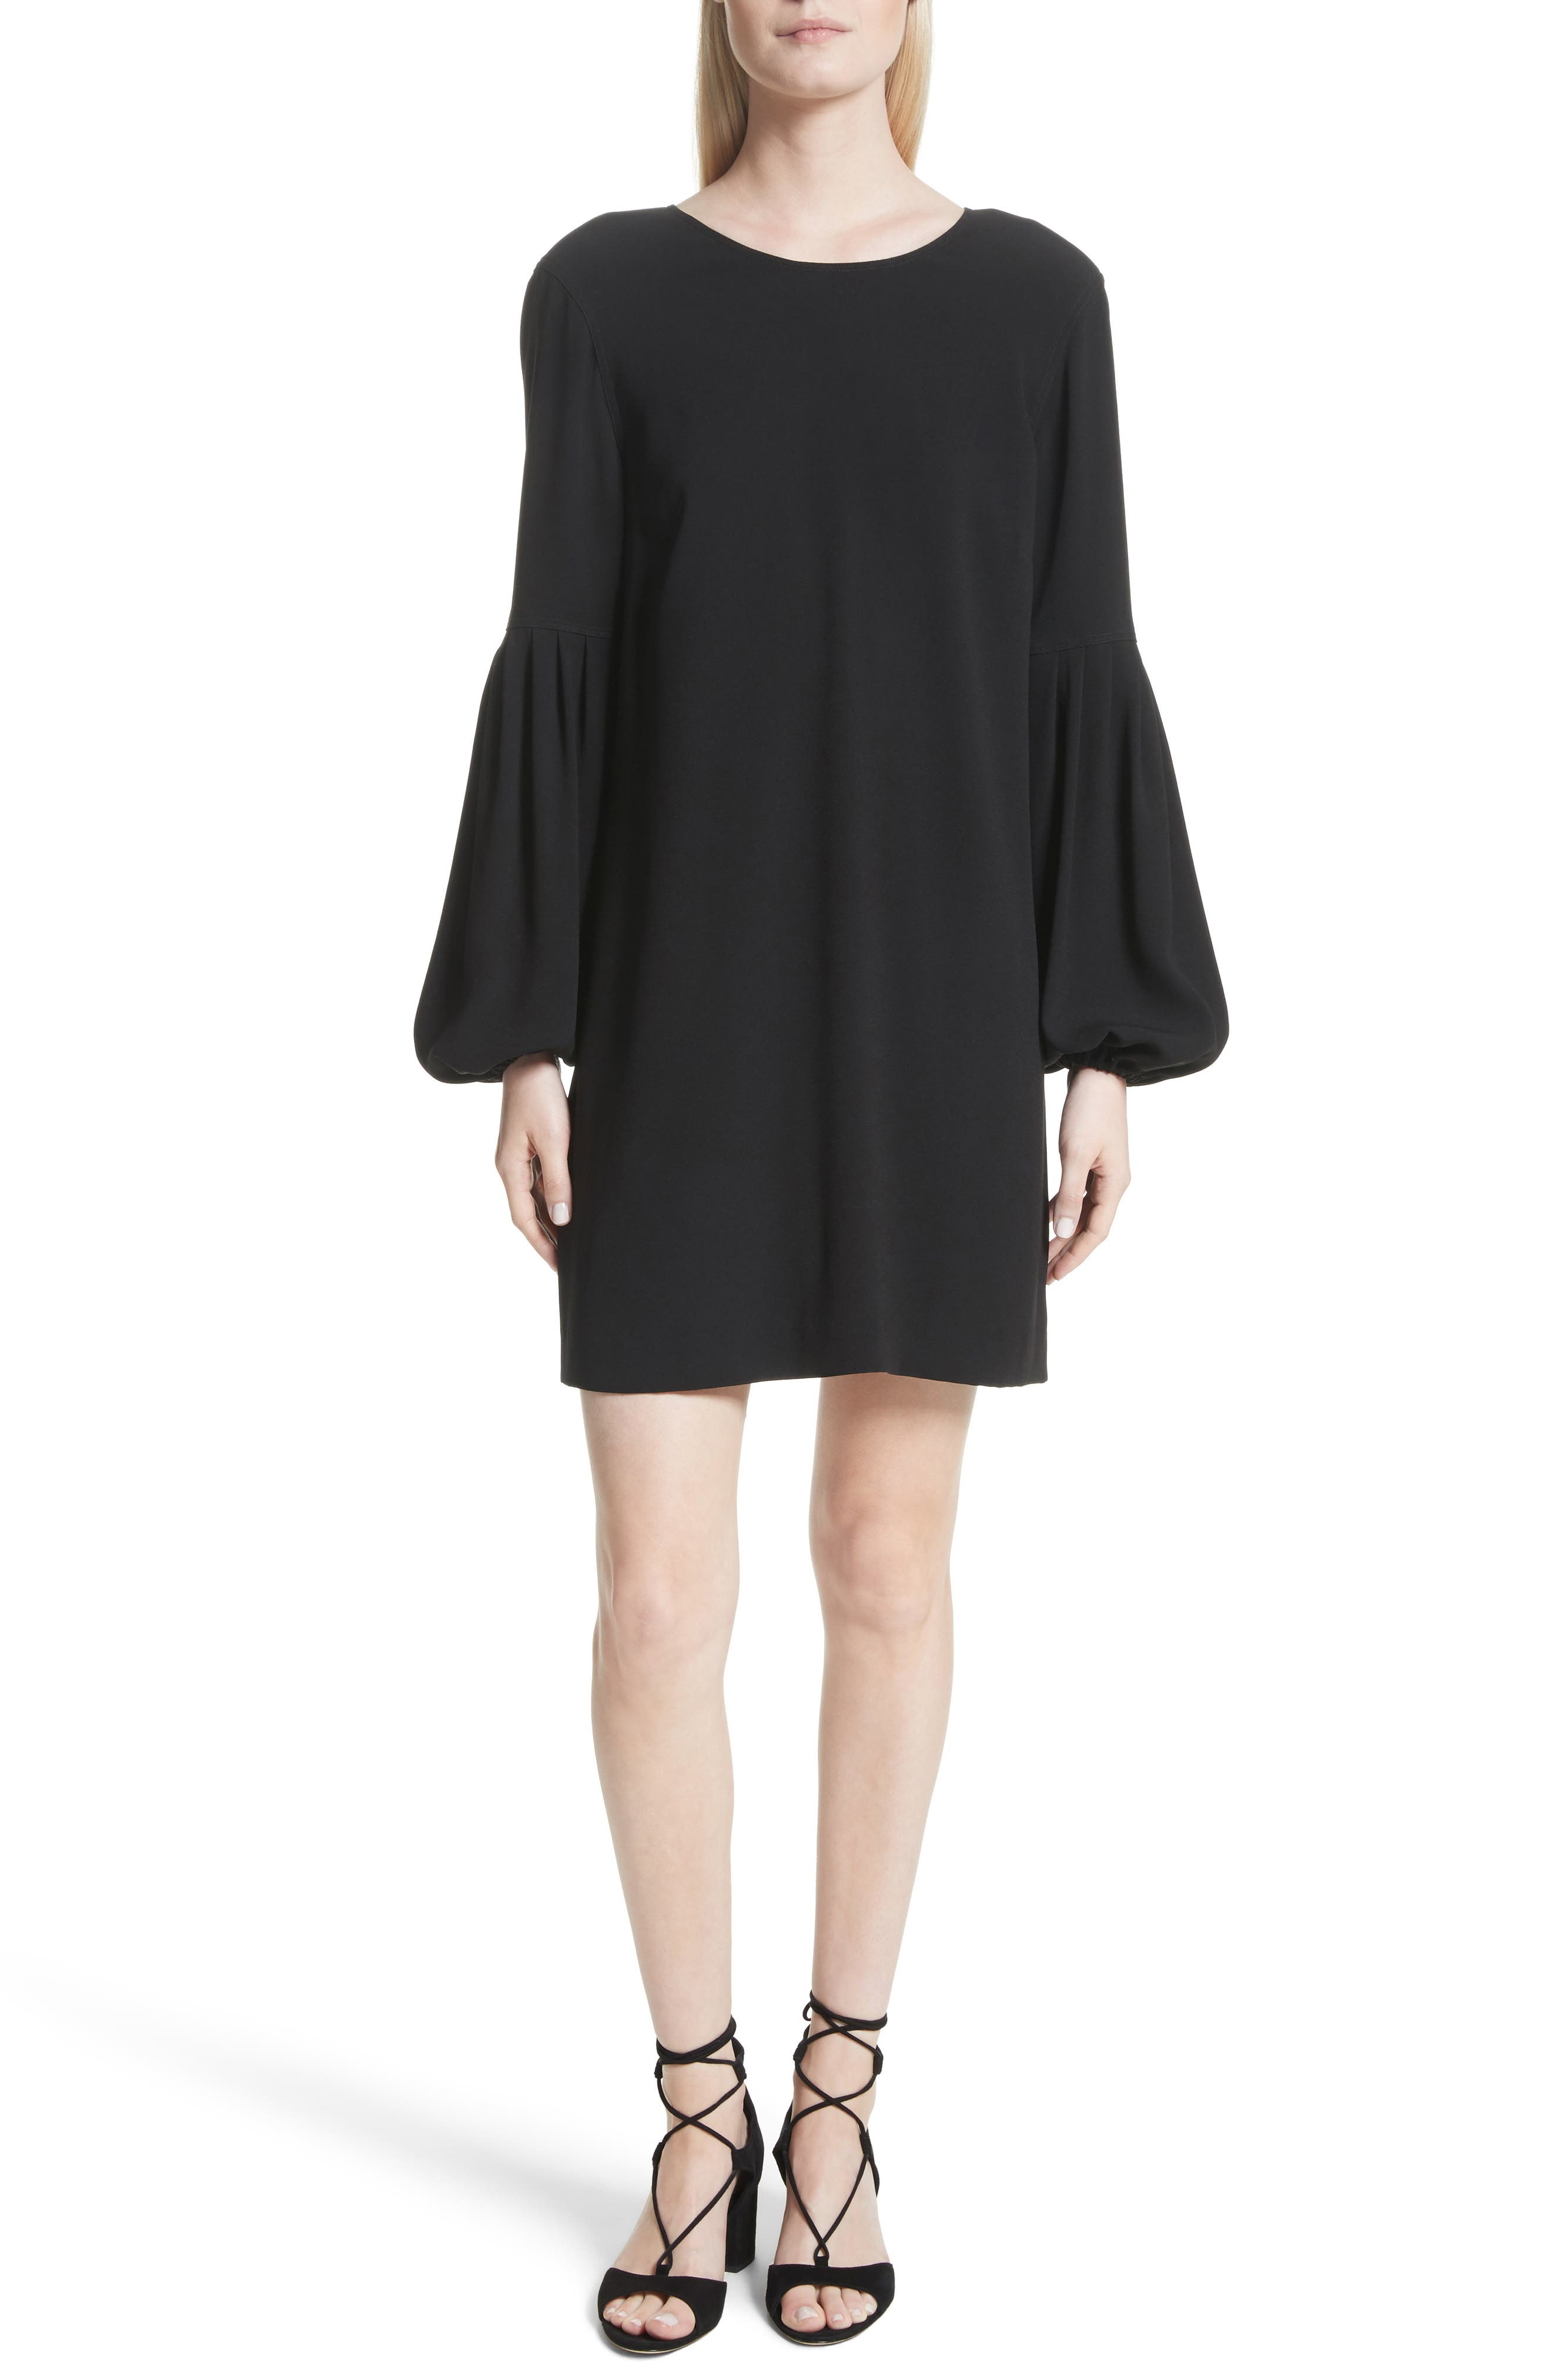 Elizabeth and James Claudia Puff Sleeve Dress